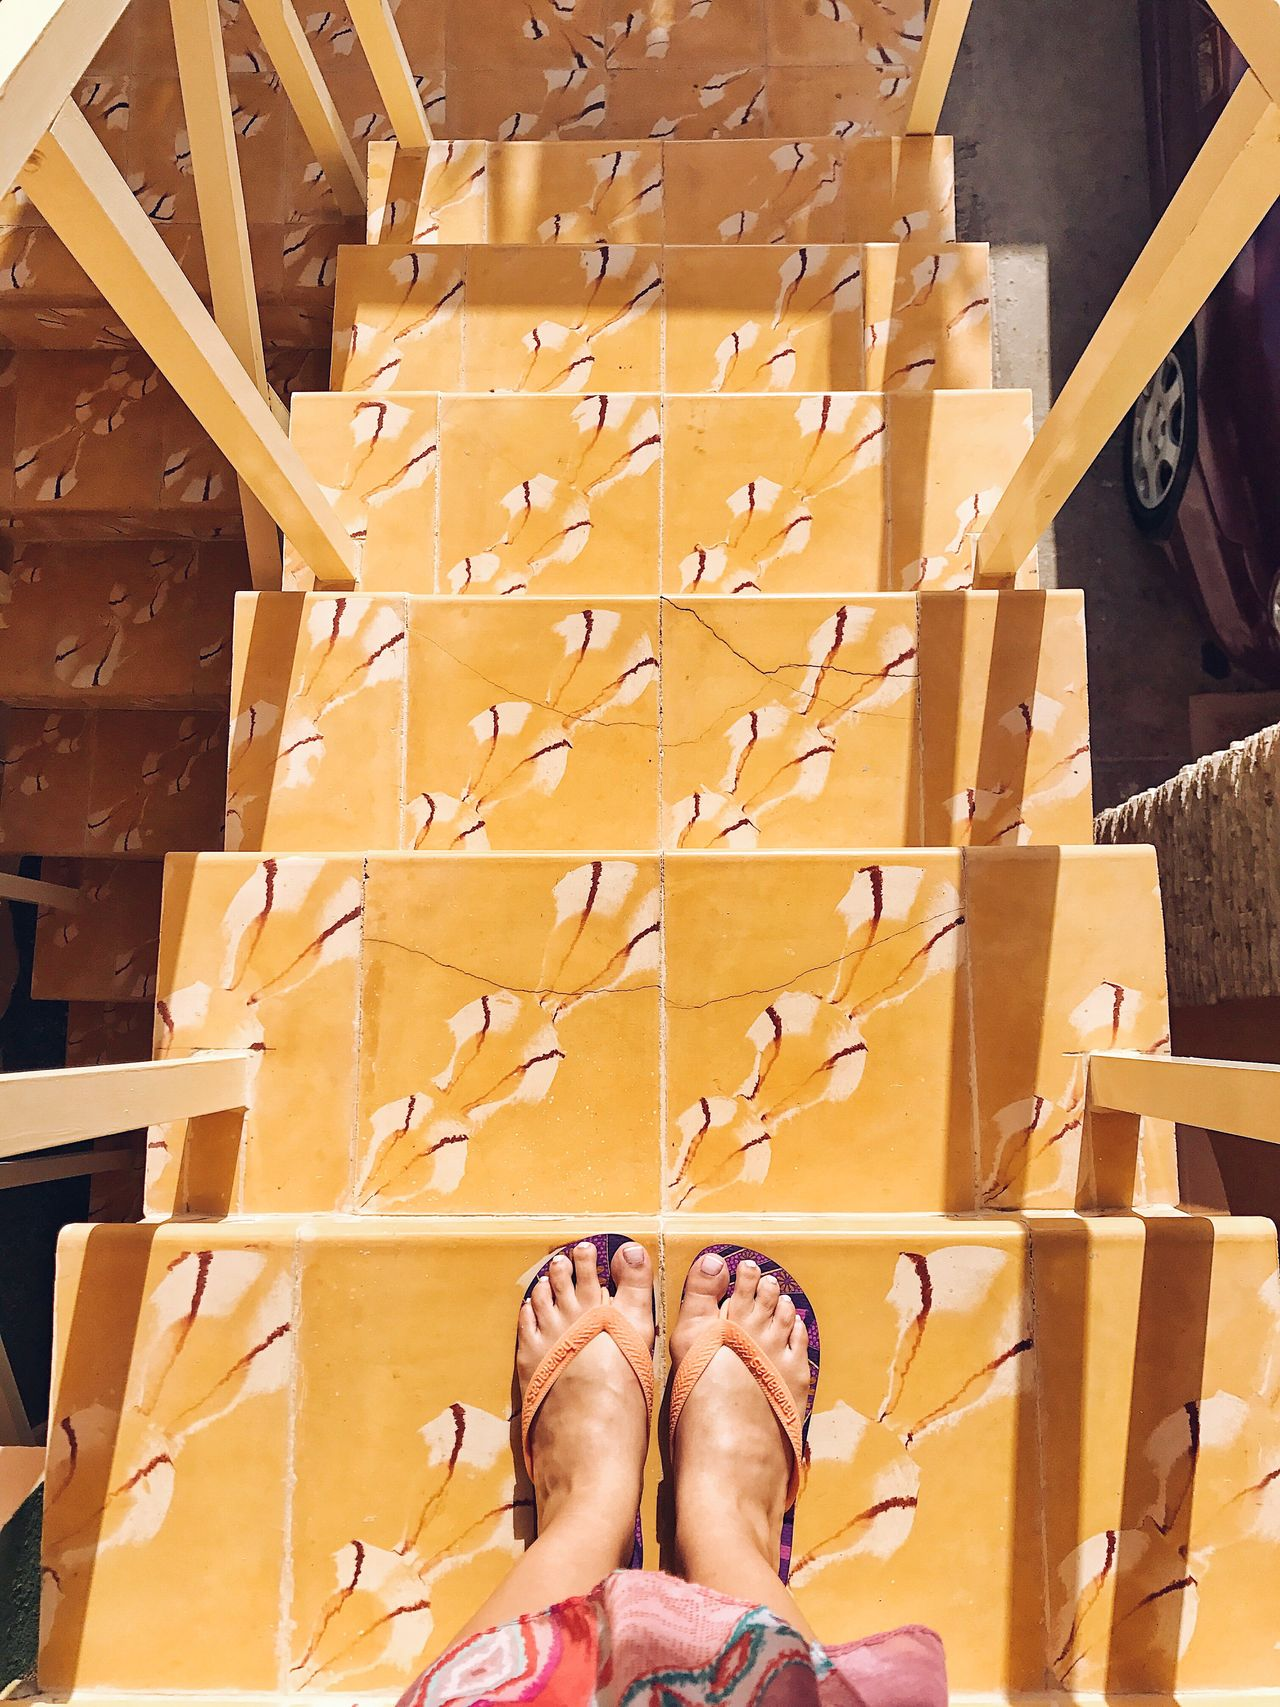 Going down. Low Section Human Leg Human Foot Personal Perspective Human Body Part Real People Women Lifestyles Standing Varadero Cuba Beach Life Warm Weather Flipflops Sandals Beach Wear Happy Feet Stairs Staircase